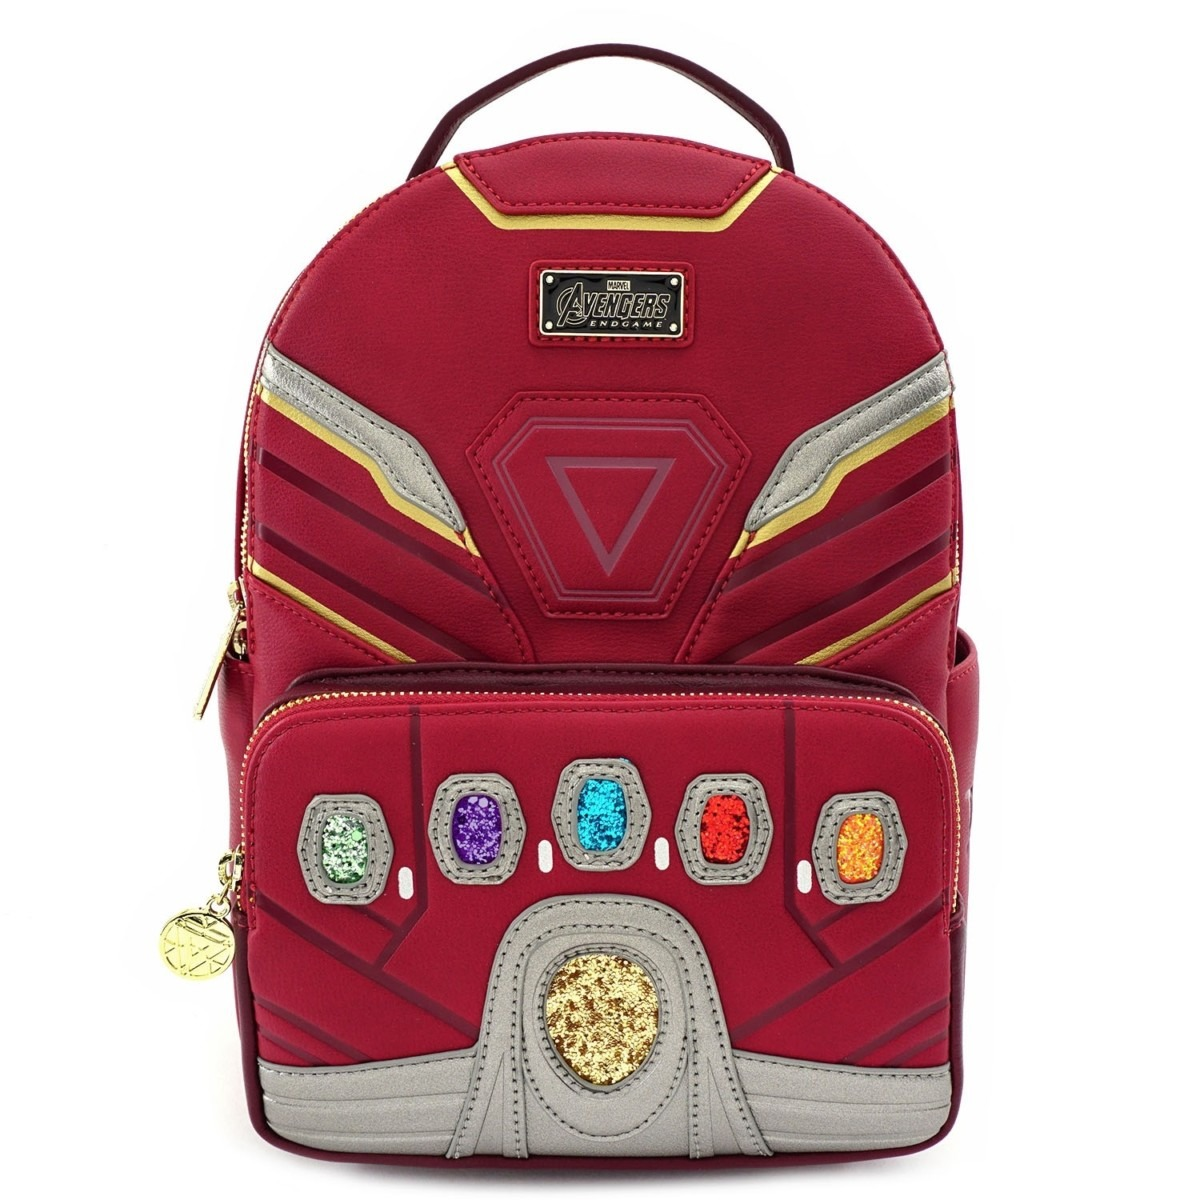 New Marvel Backpacks & Accessories from Loungefly 3